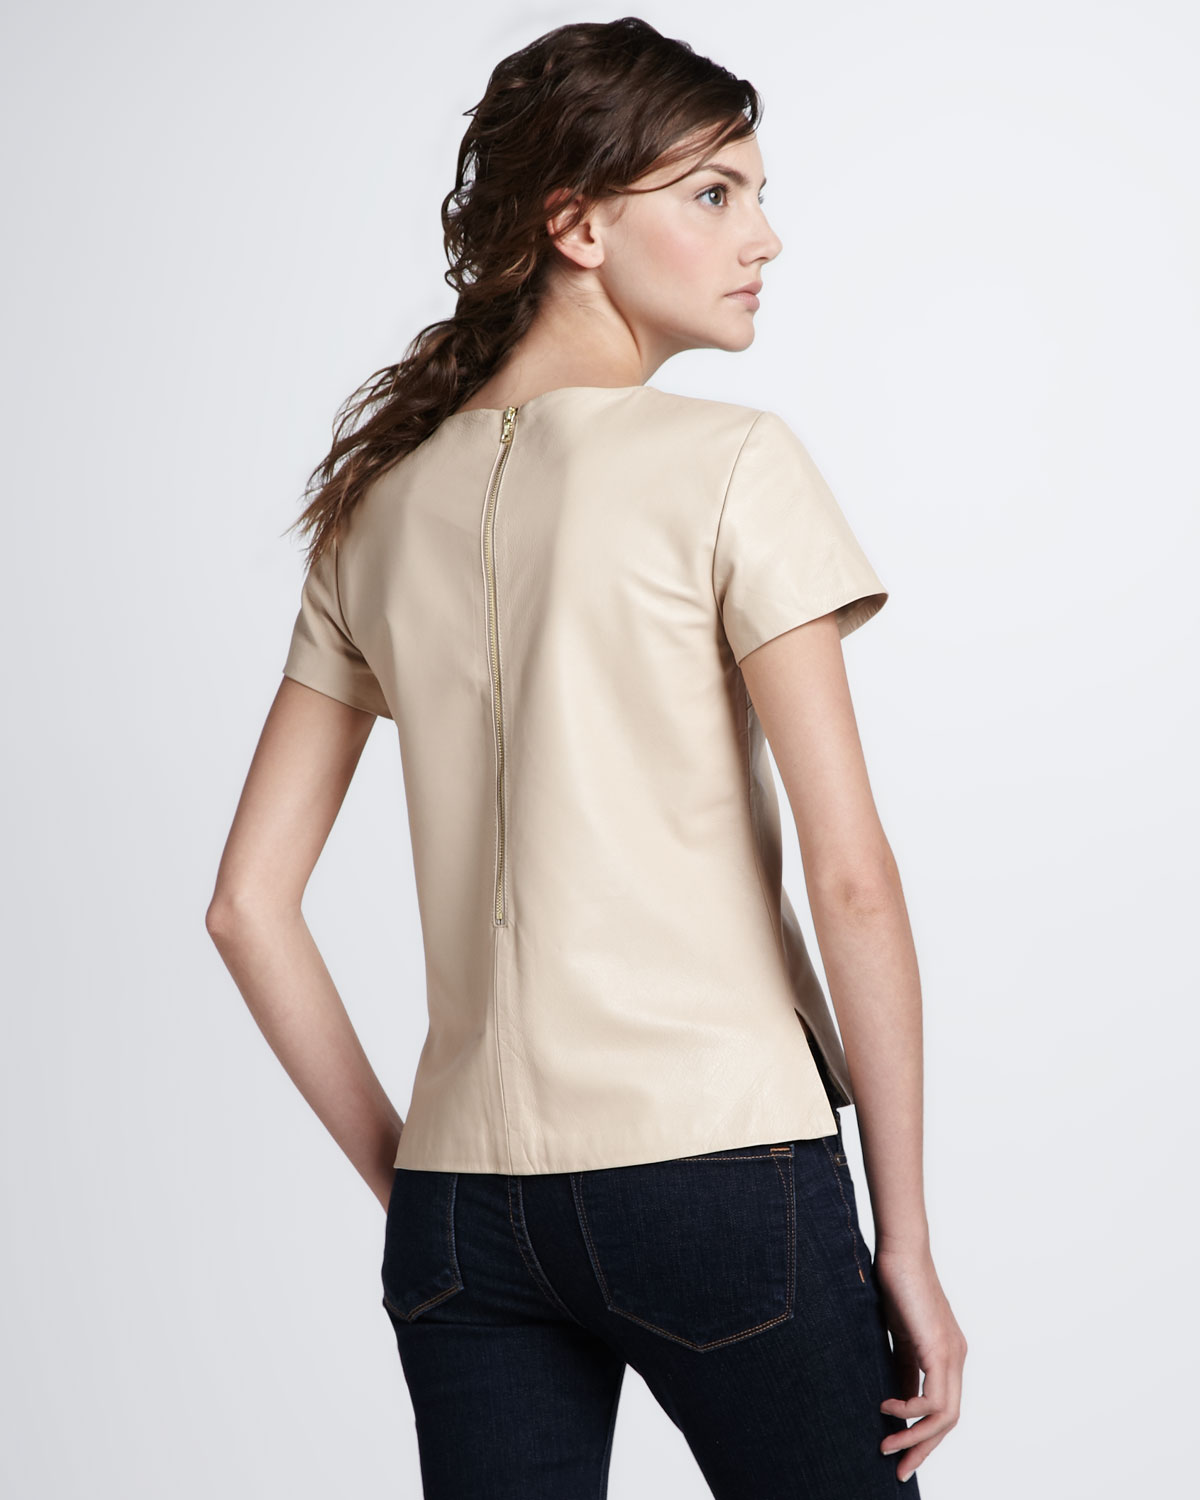 Trina Turk Maricruz Leather Tee In Natural  Lyst-2273